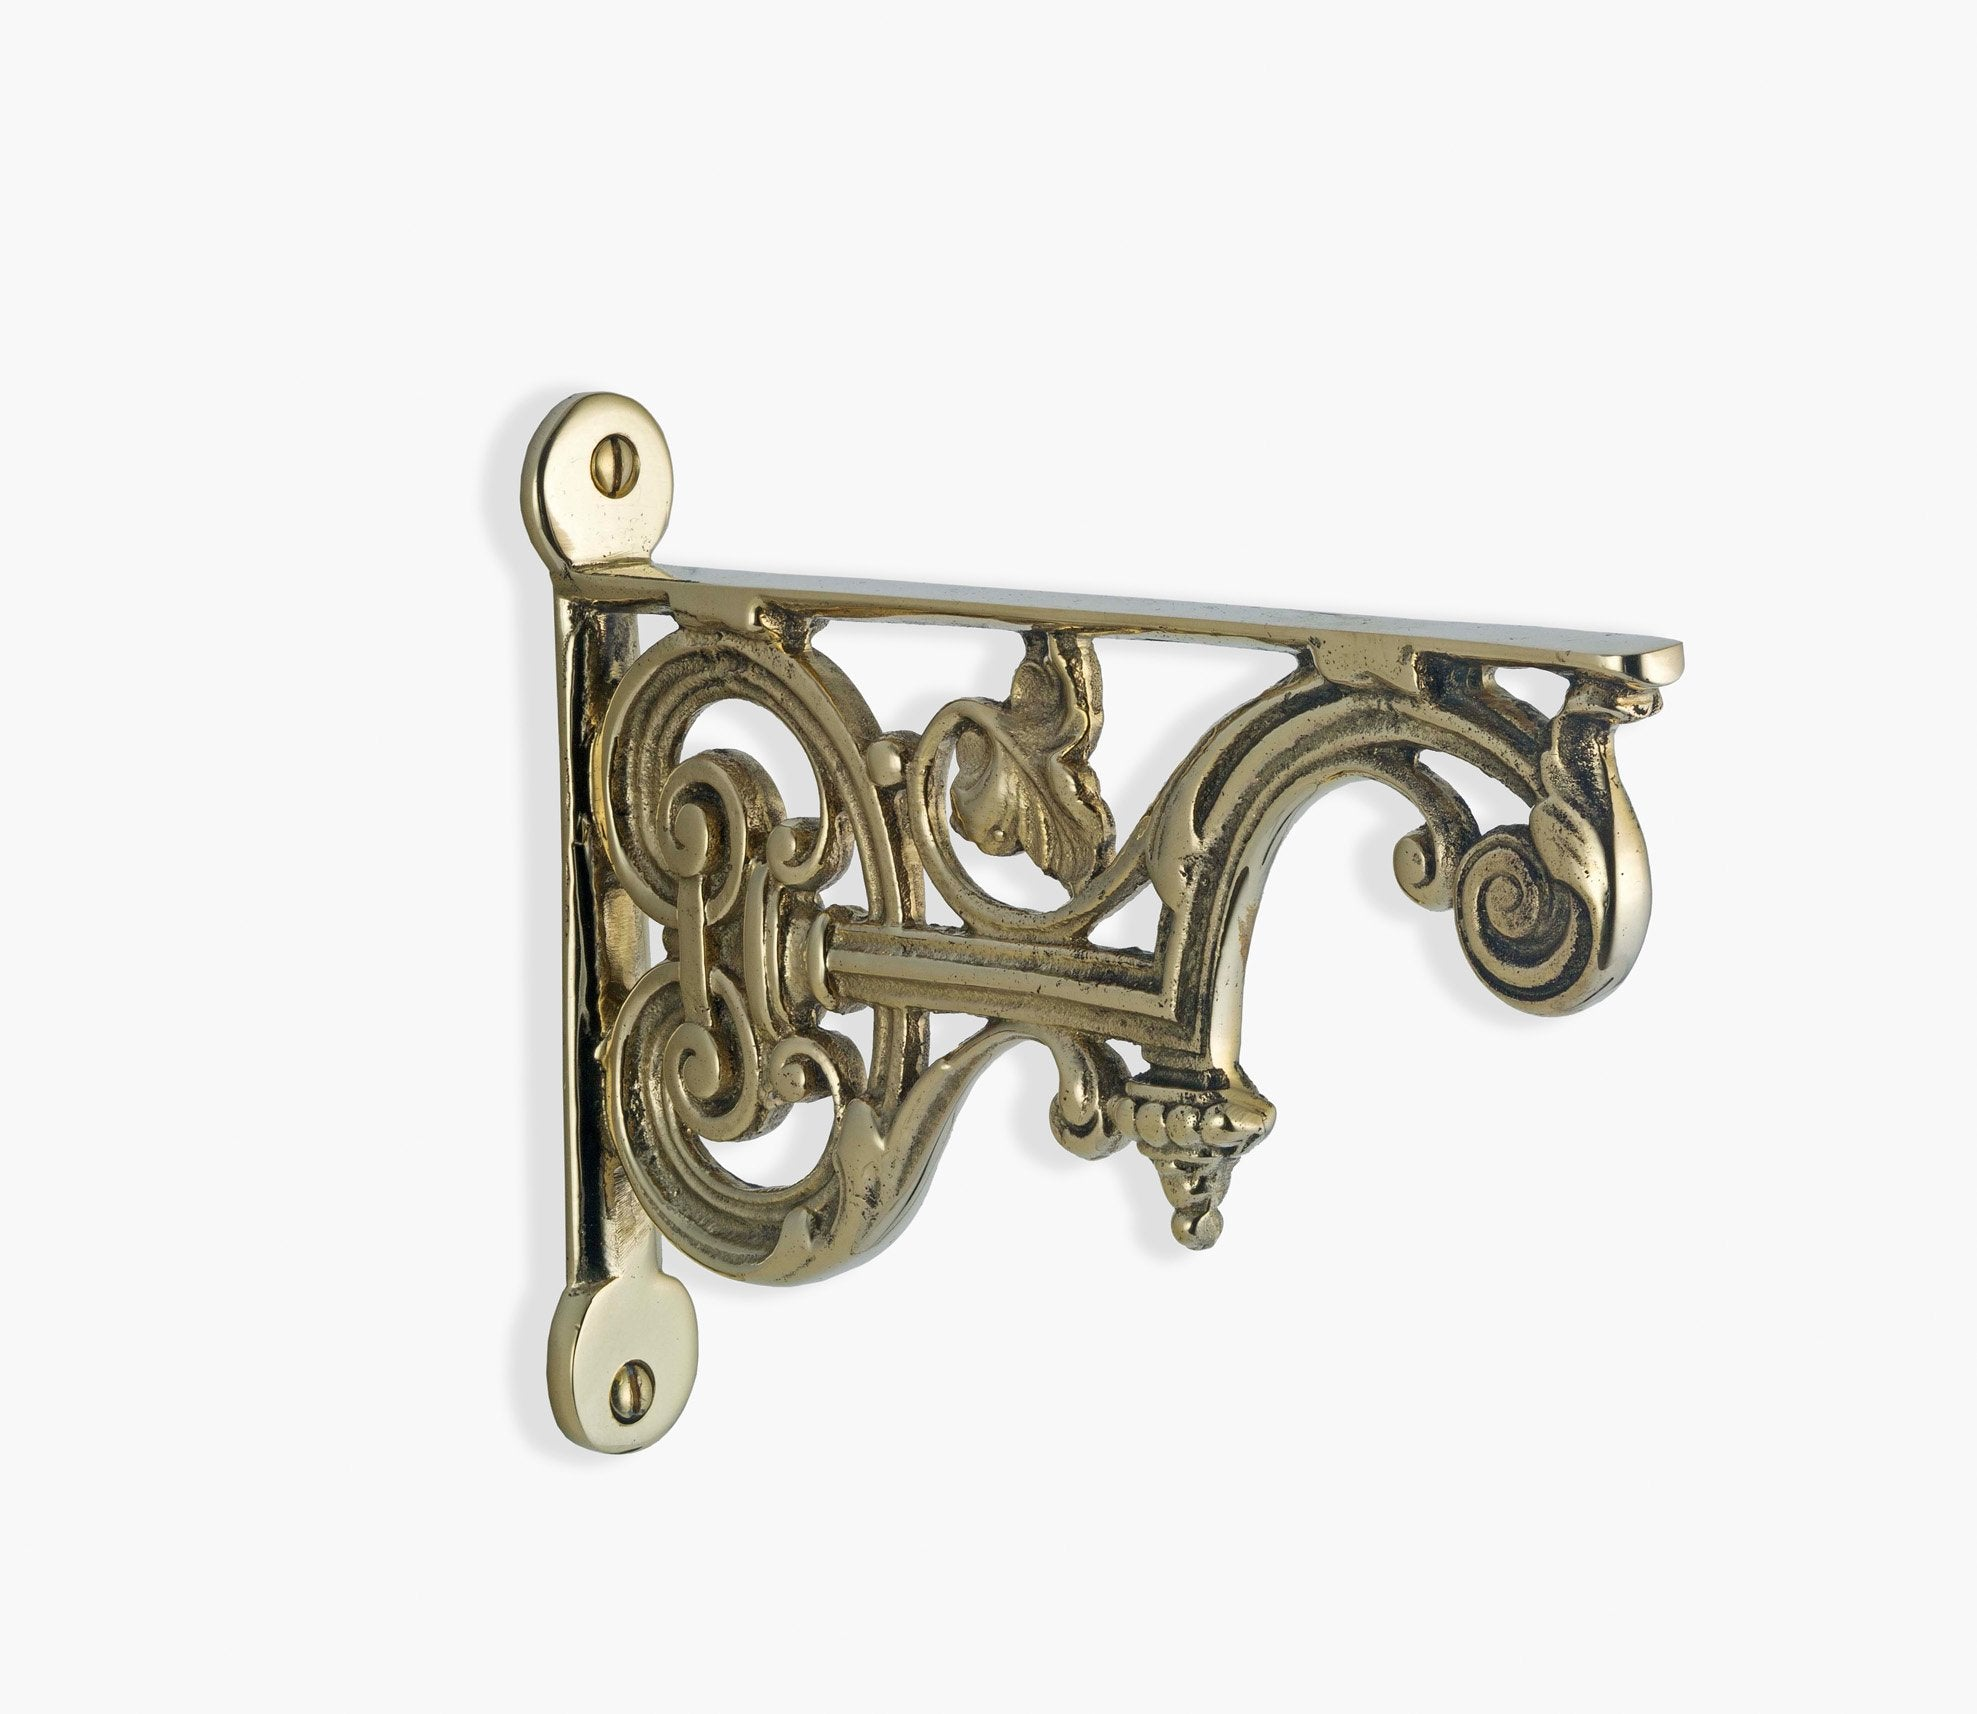 Shelf Bracket 009 Product Image 1